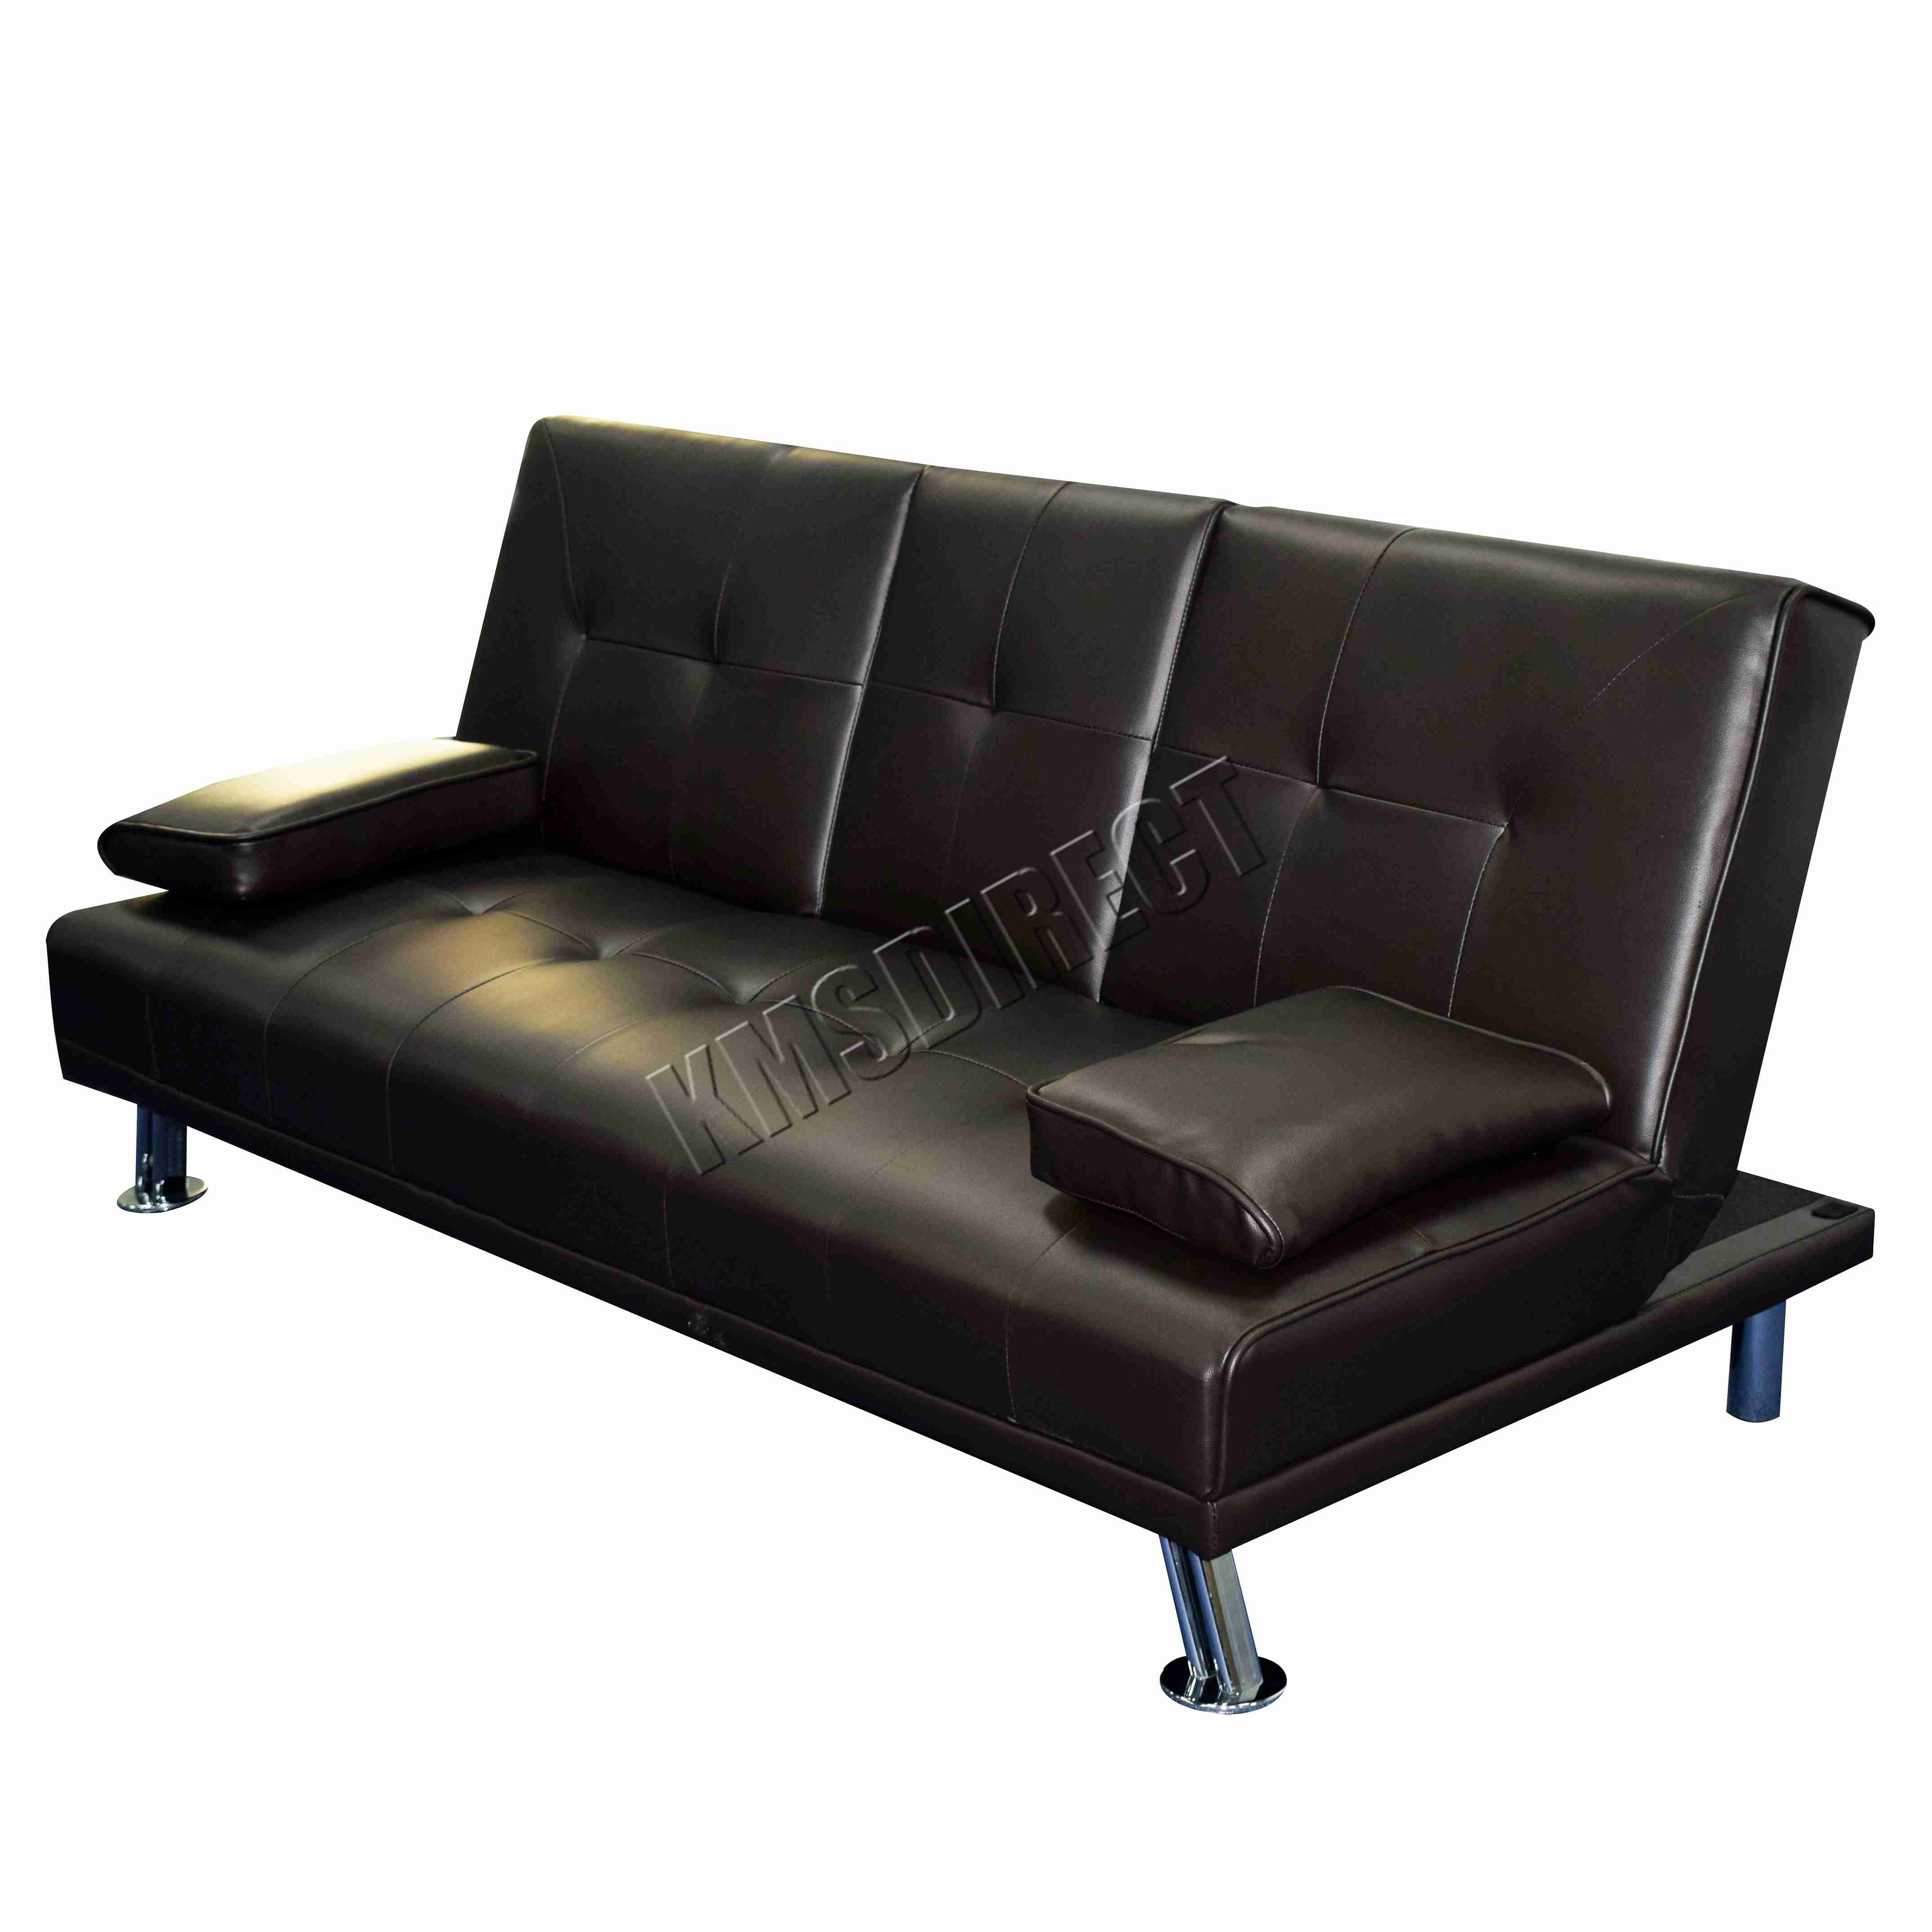 manhattan five seater sofa set 3 1 brown wooden designs images faux leather bed recliner modern